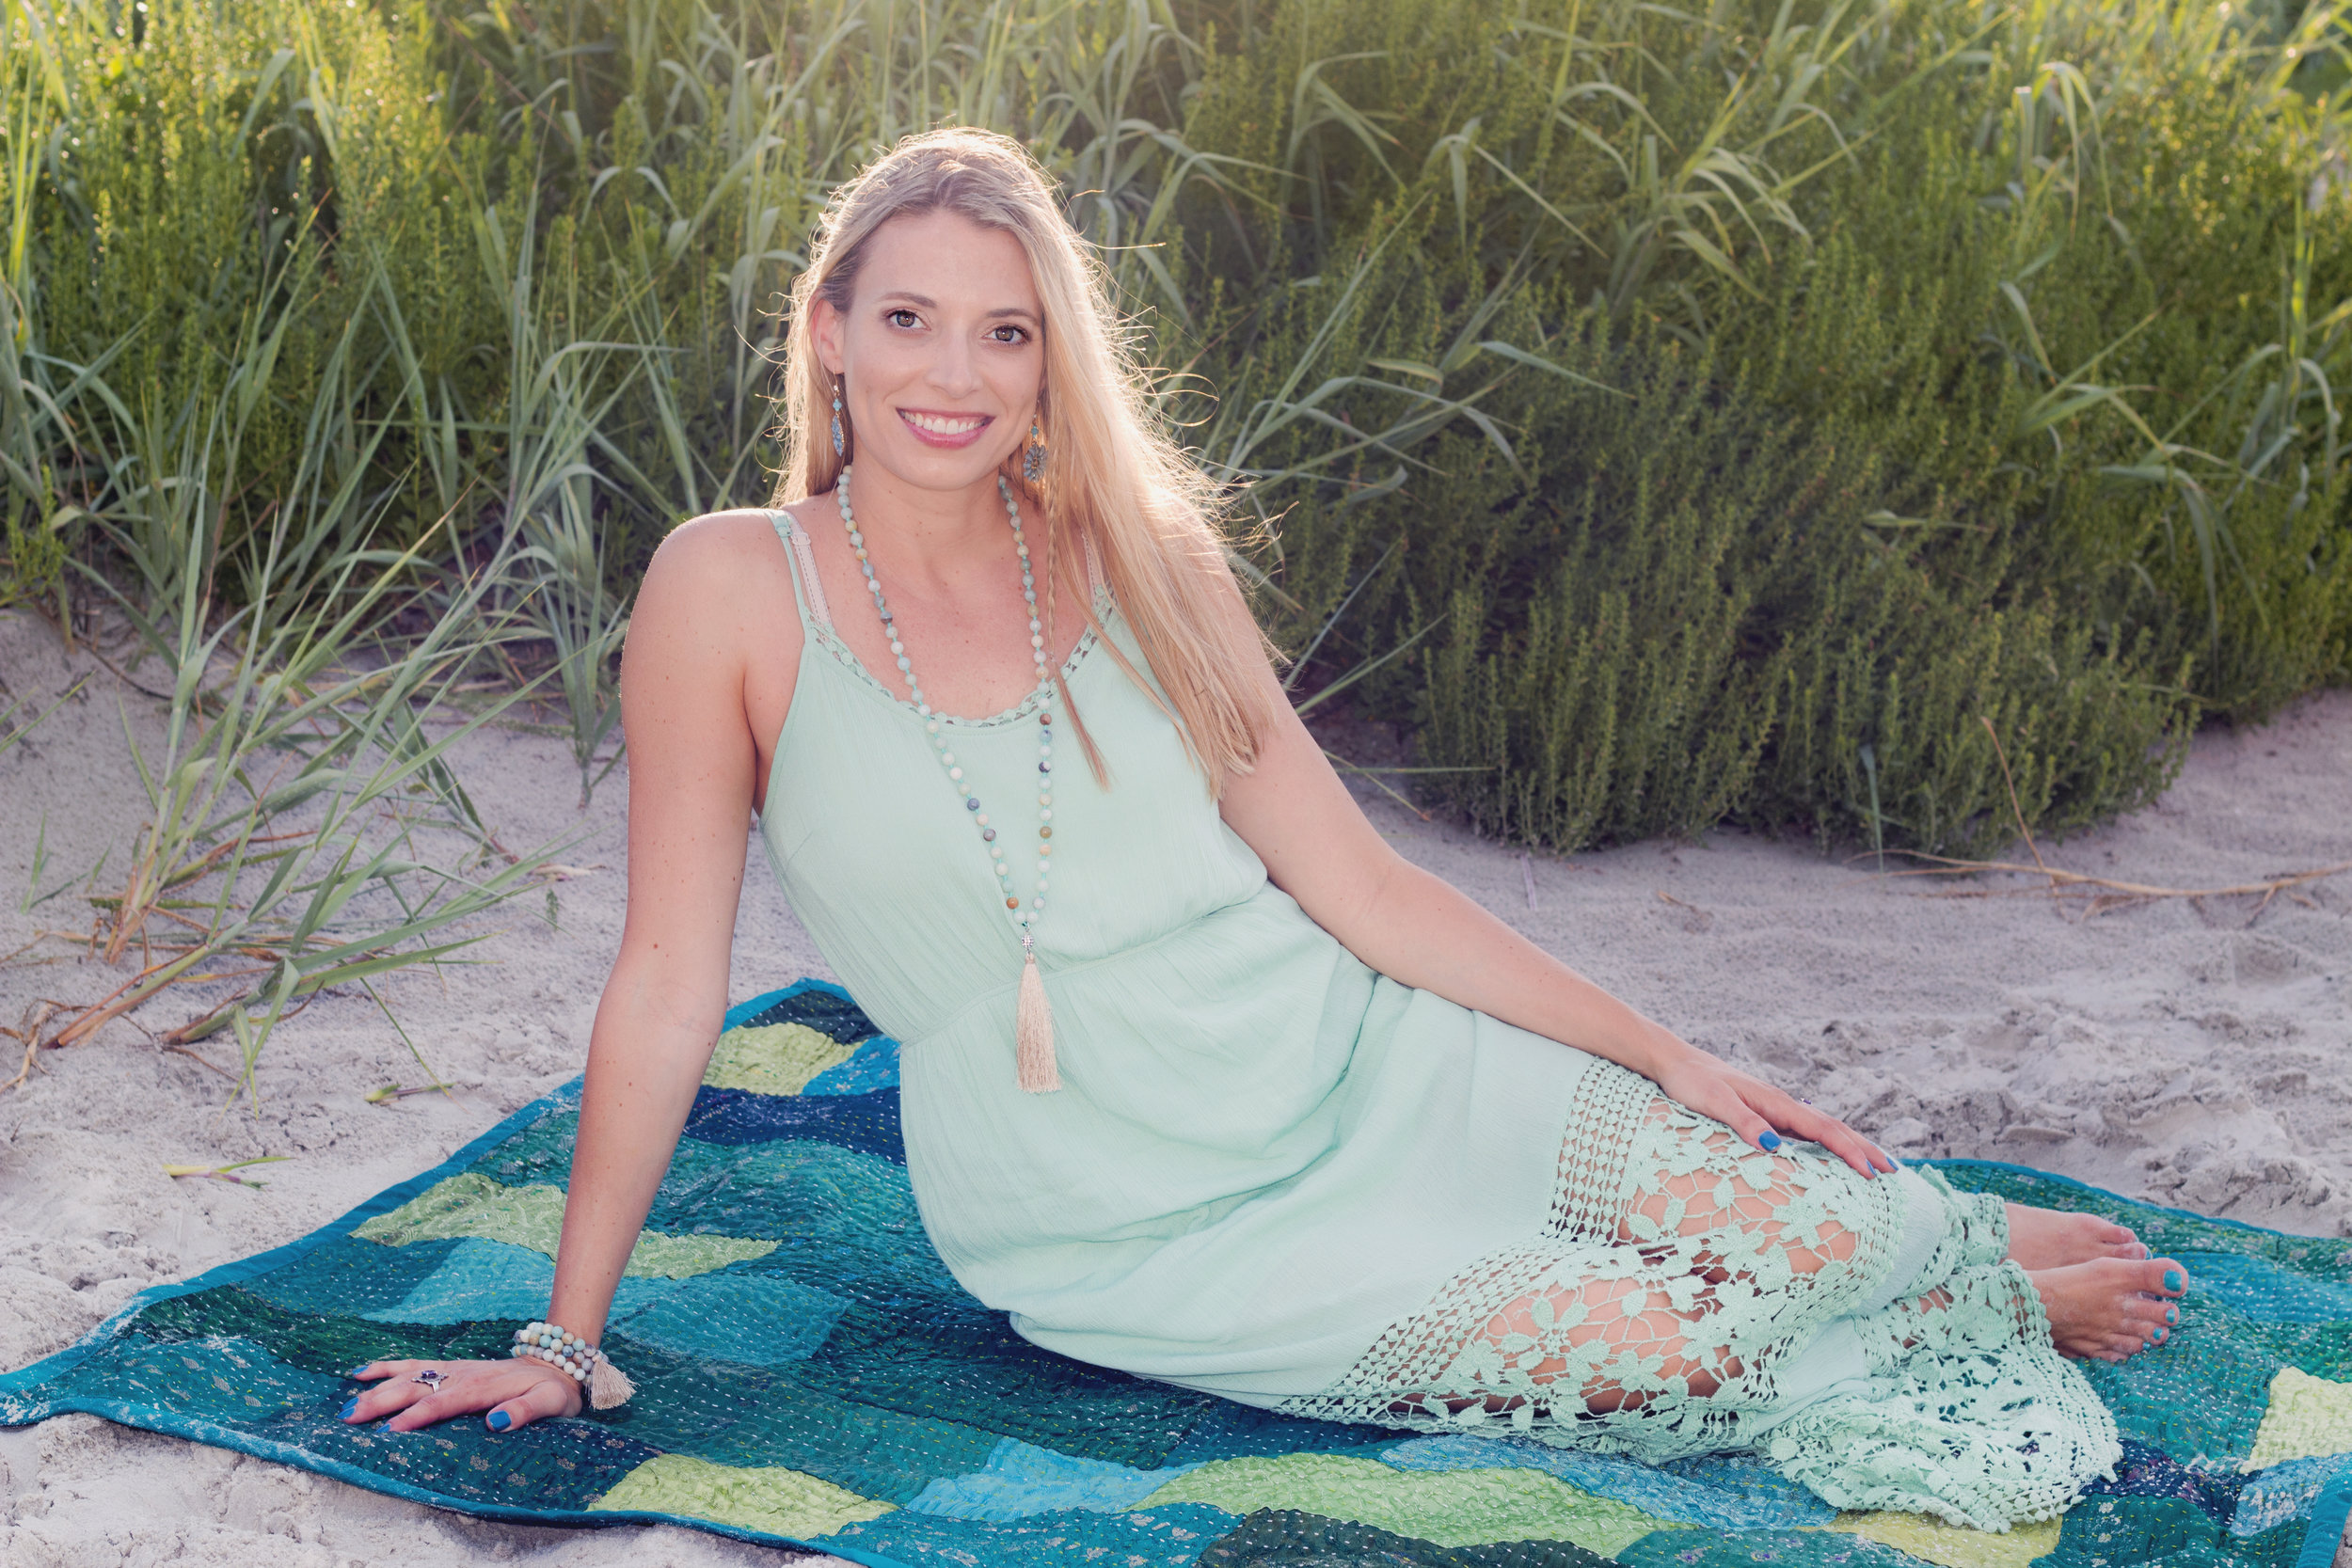 HI, I'M DENA BLEVINS - I was once where you are, feeling lost and unsure on my spiritual journey. Today, I'm a successful spiritual awakening and divine purpose coach who helps rising lightworkers like you gain clarity so they can pave pathways into fulfilling lives and businesses they love.